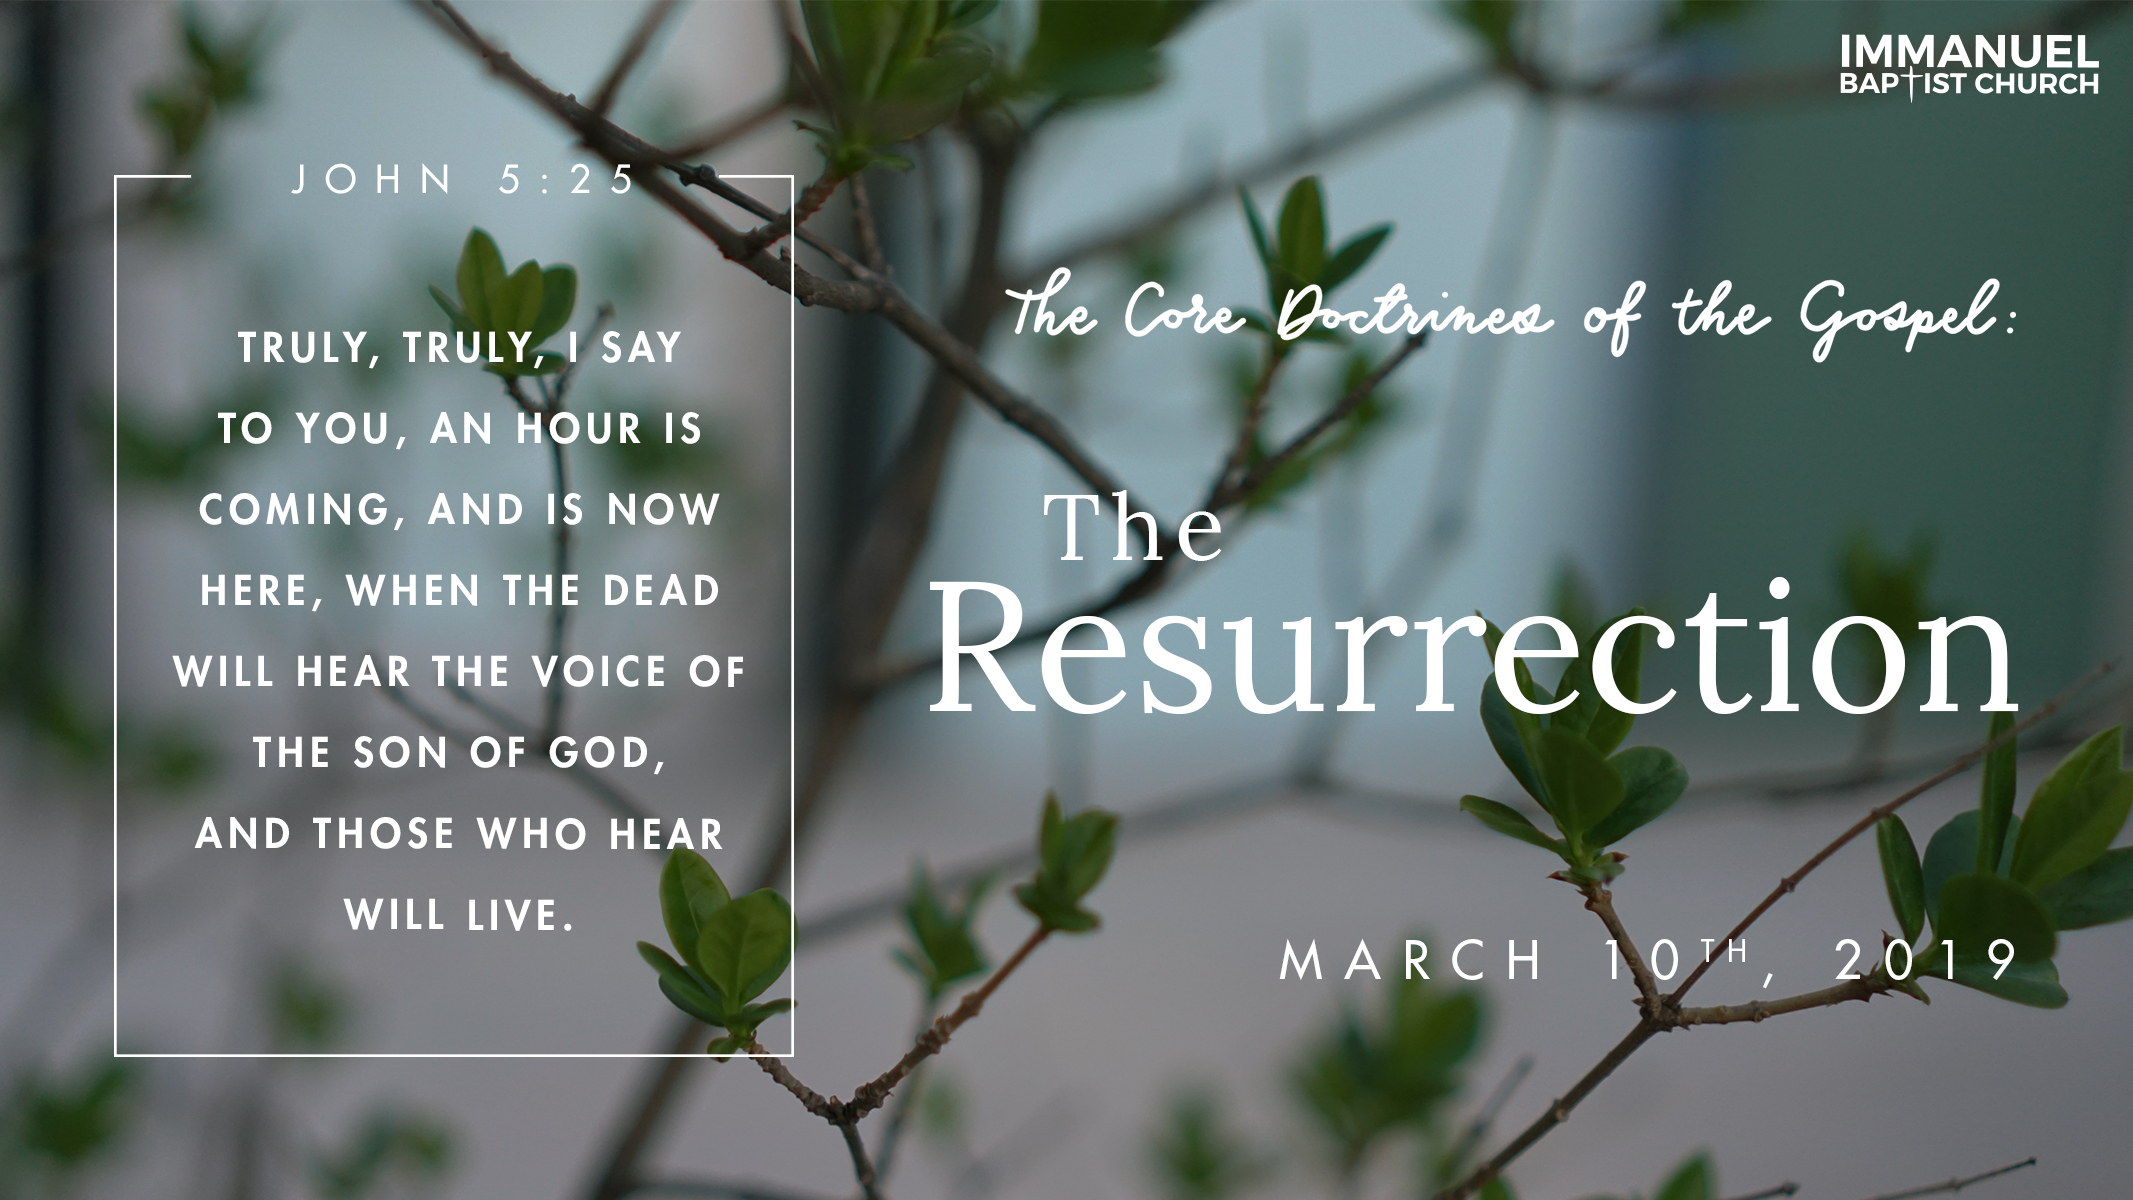 The Core Doctrines of the Gospel (Part 5): The Resurrection Image